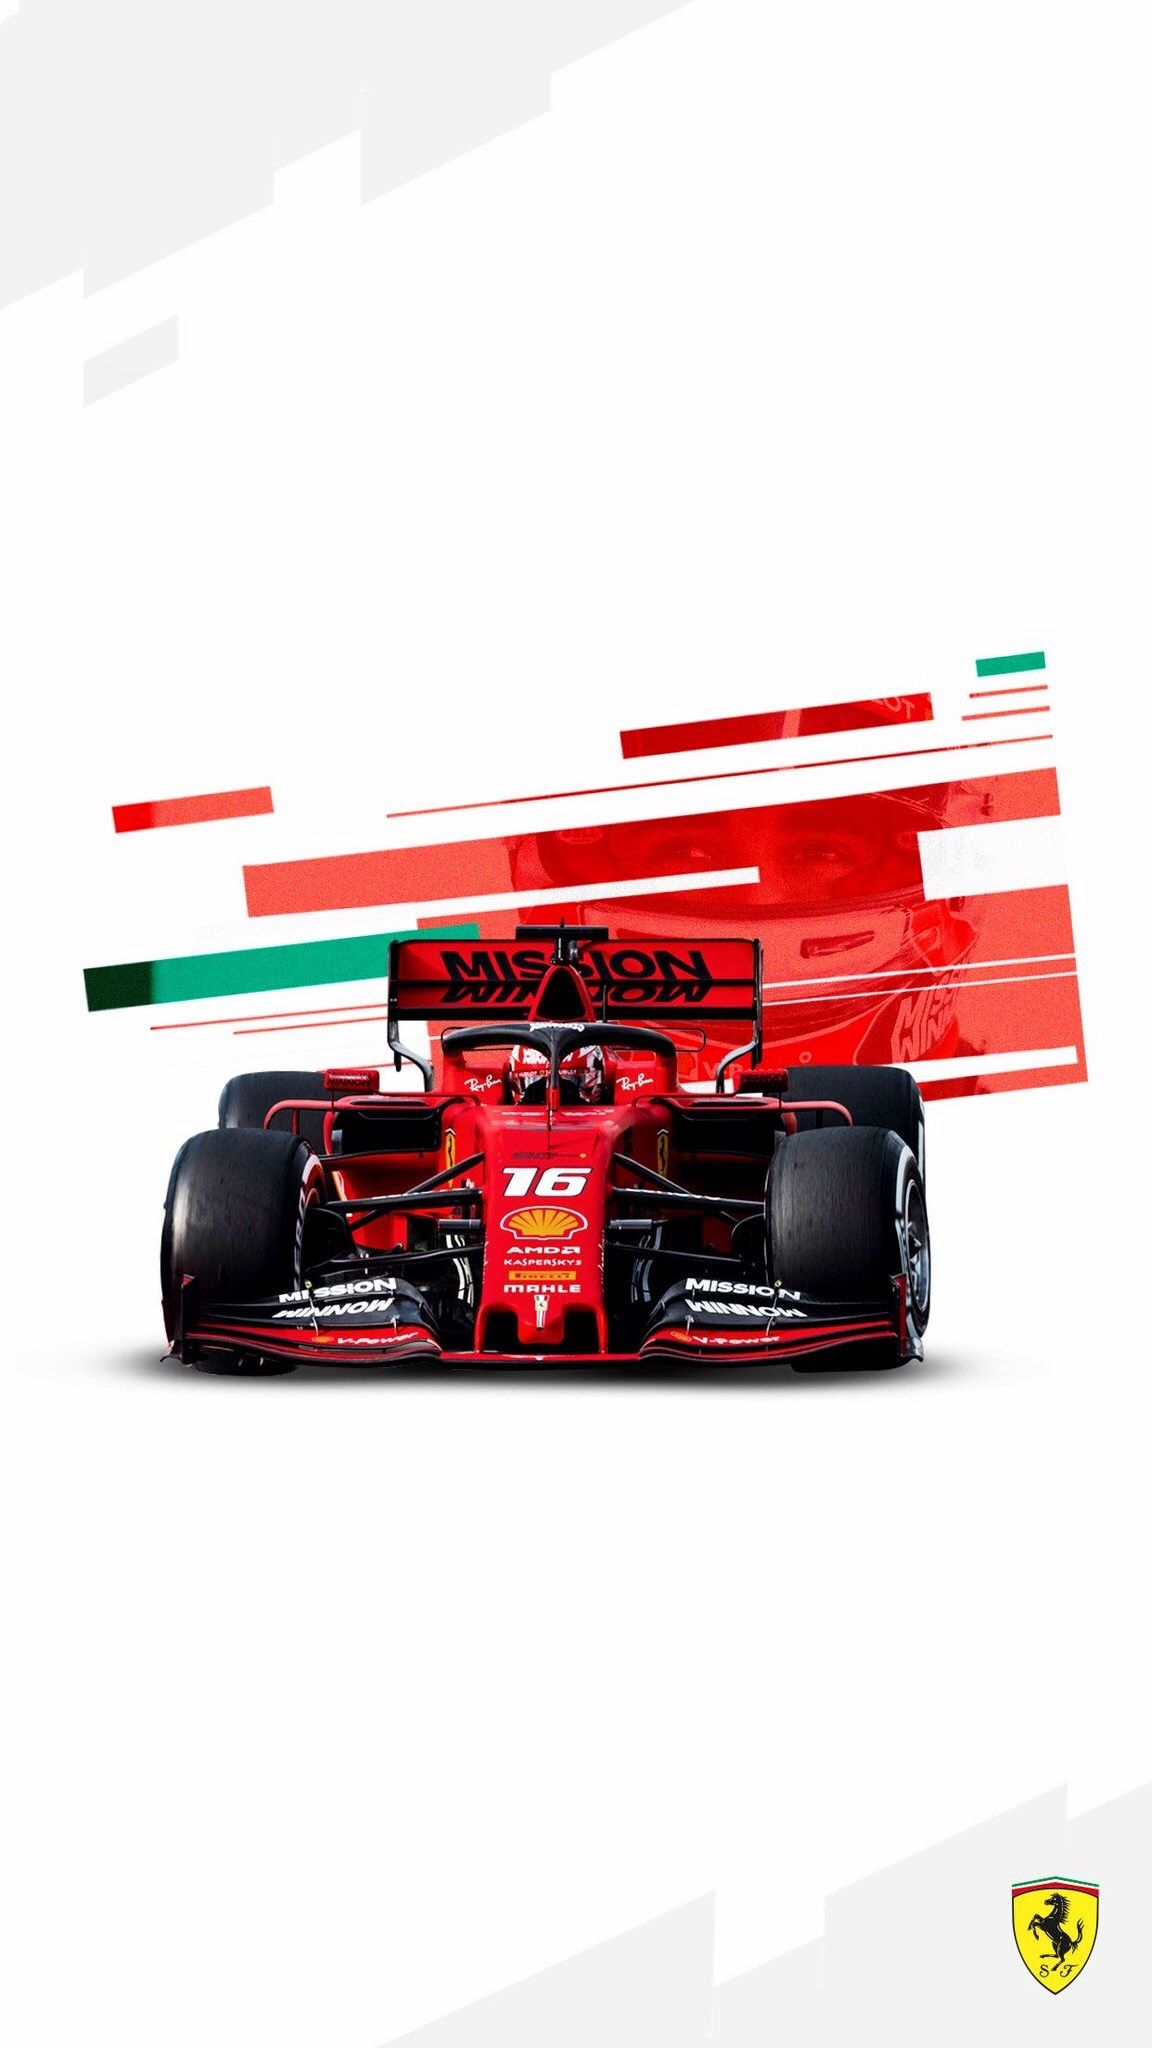 2019 2 23 Twitter Scuderiaferrari About Time You Had Some